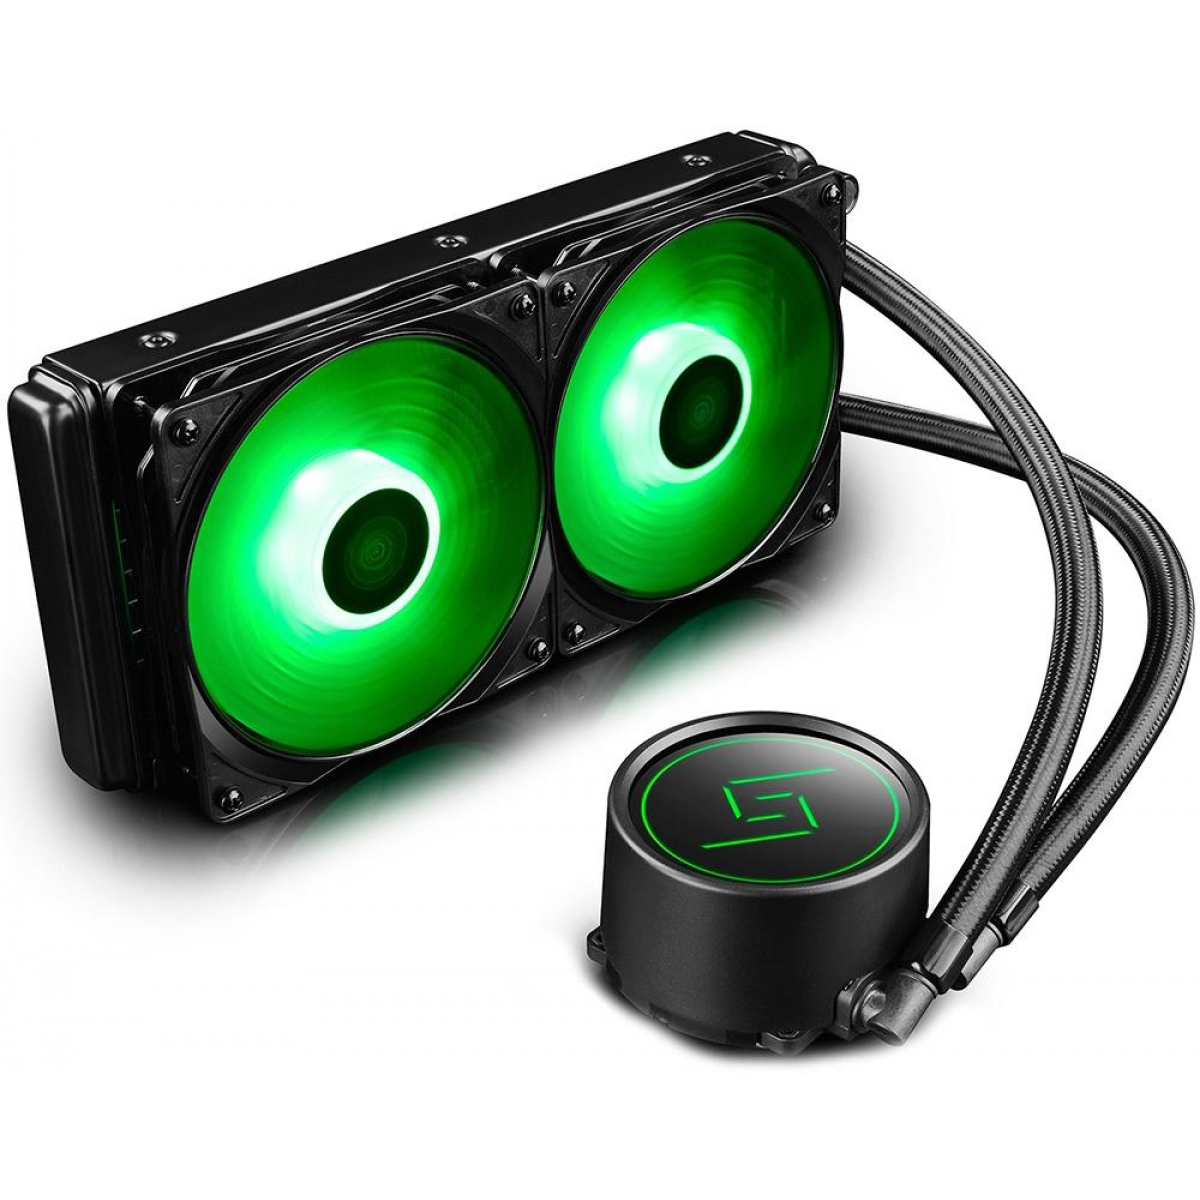 Water Cooler DeepCool Gammaxx L240, RGB 240mm, Intel-AMD, DP-H24RF-GL240RGB